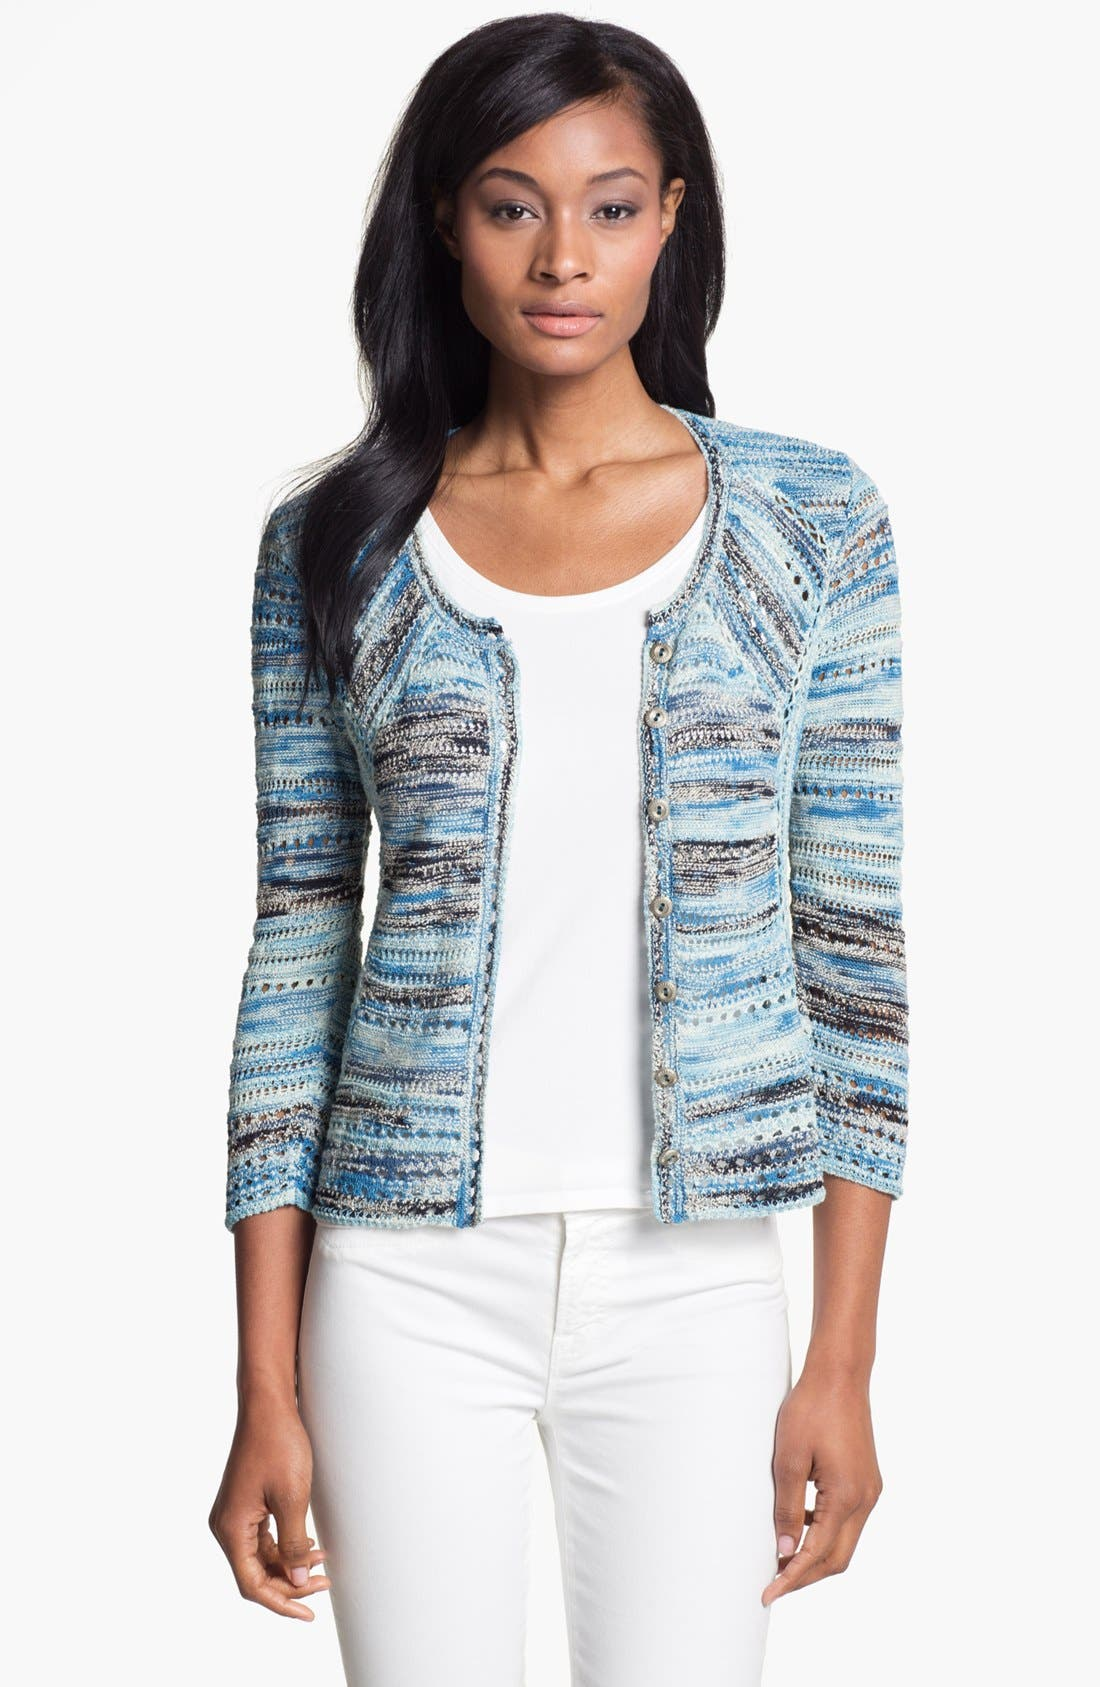 Alternate Image 1 Selected - Nic + Zoe 'Blues' Textured Cardigan (Petite)